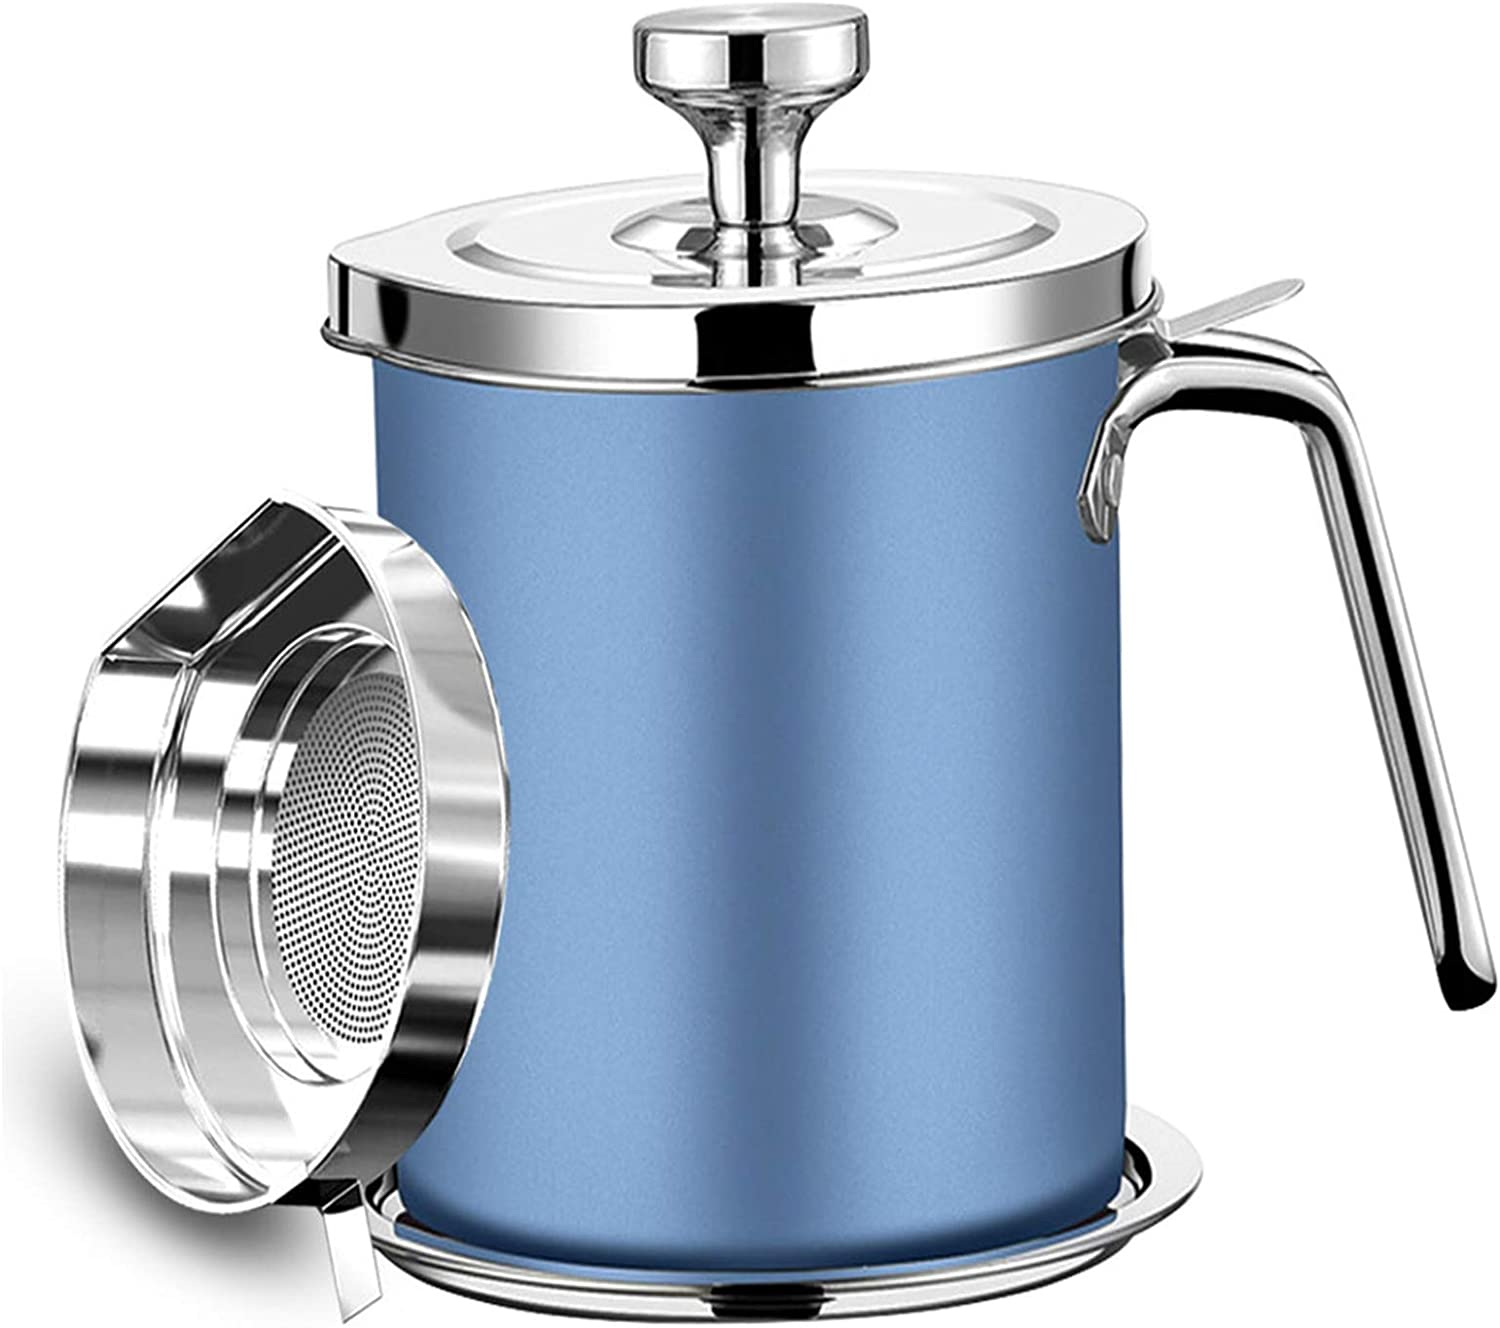 Bacon Grease Container, 304 Stainless Steel Grease Keeper, 1.3L Oil Storage Pot with Fine Mesh Strainer, Kitchen Cooking or Frying Oil (Blue)